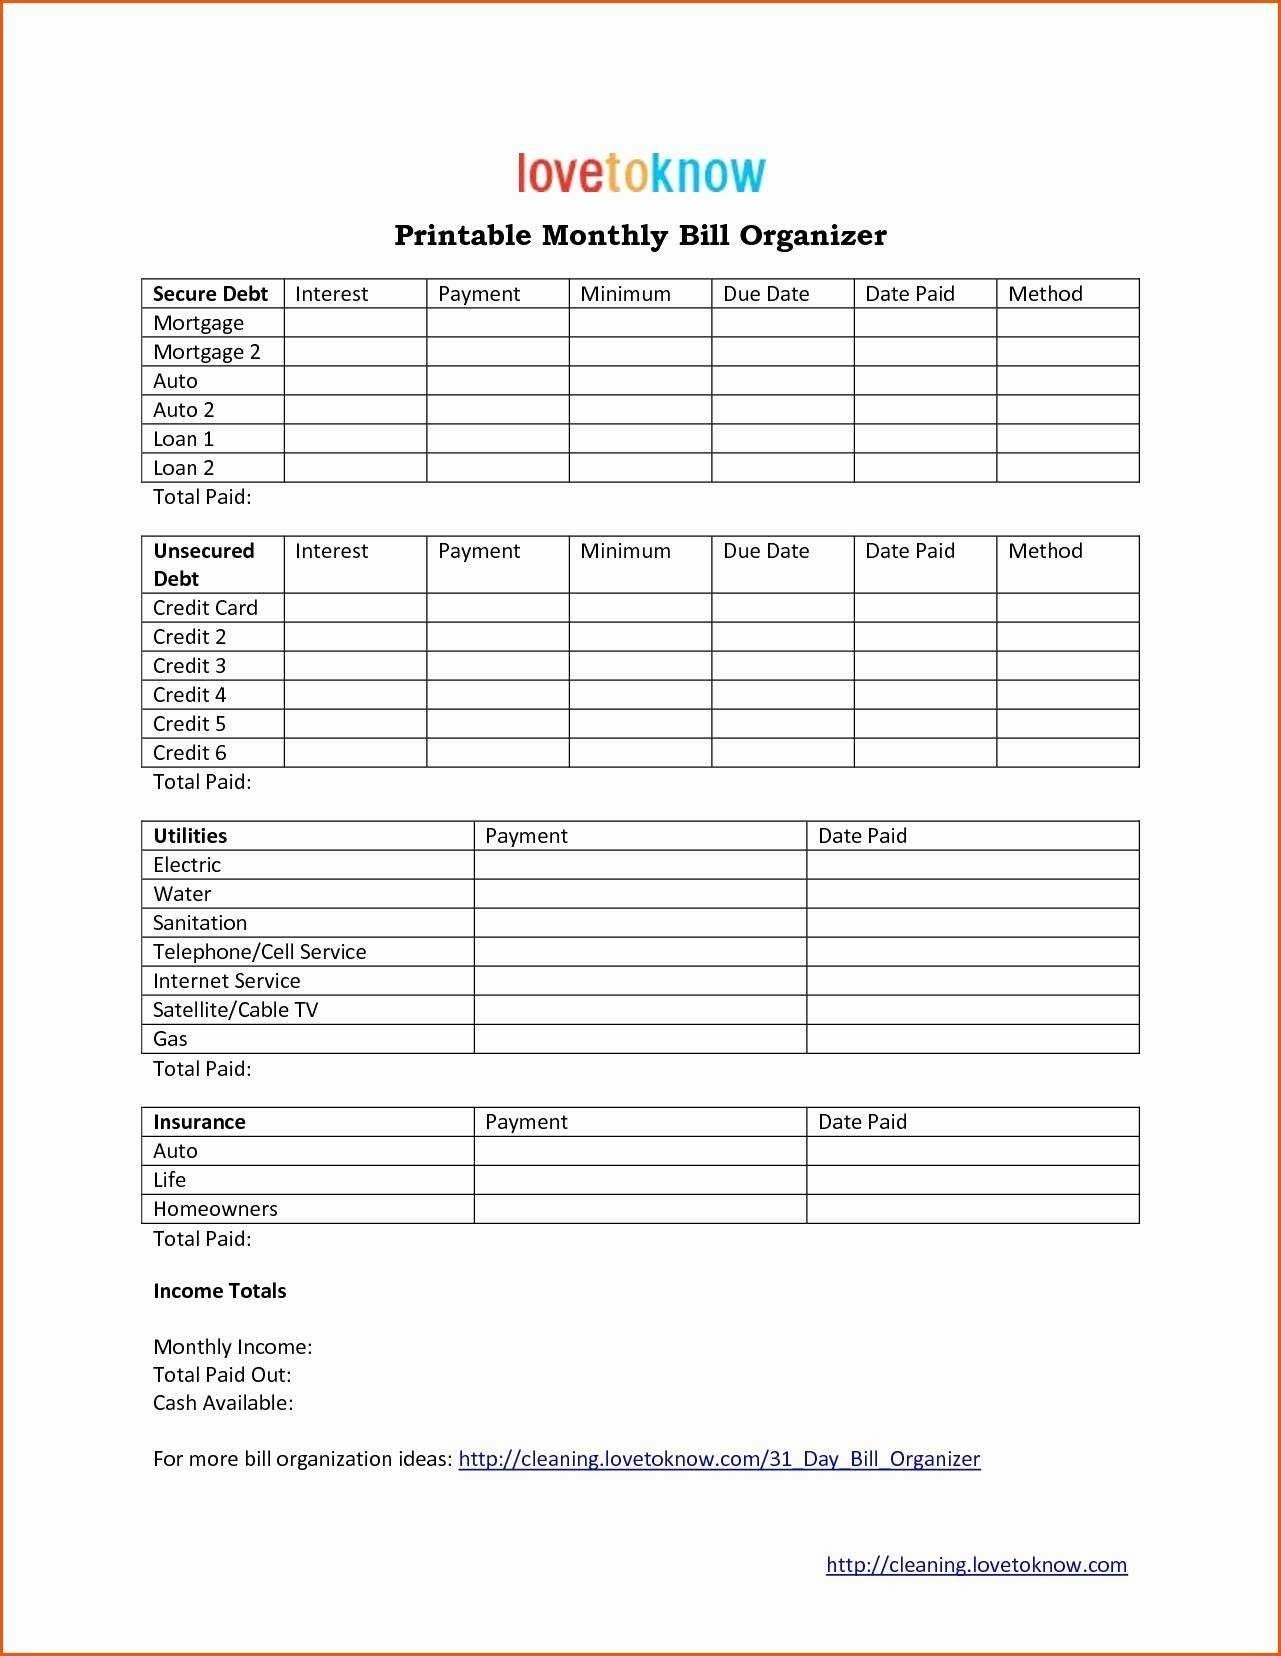 Monthly Profit And Loss Statement Template And Bill Pay Calendar pertaining to Bills And Address Phone Number Orgnaizer With Calender